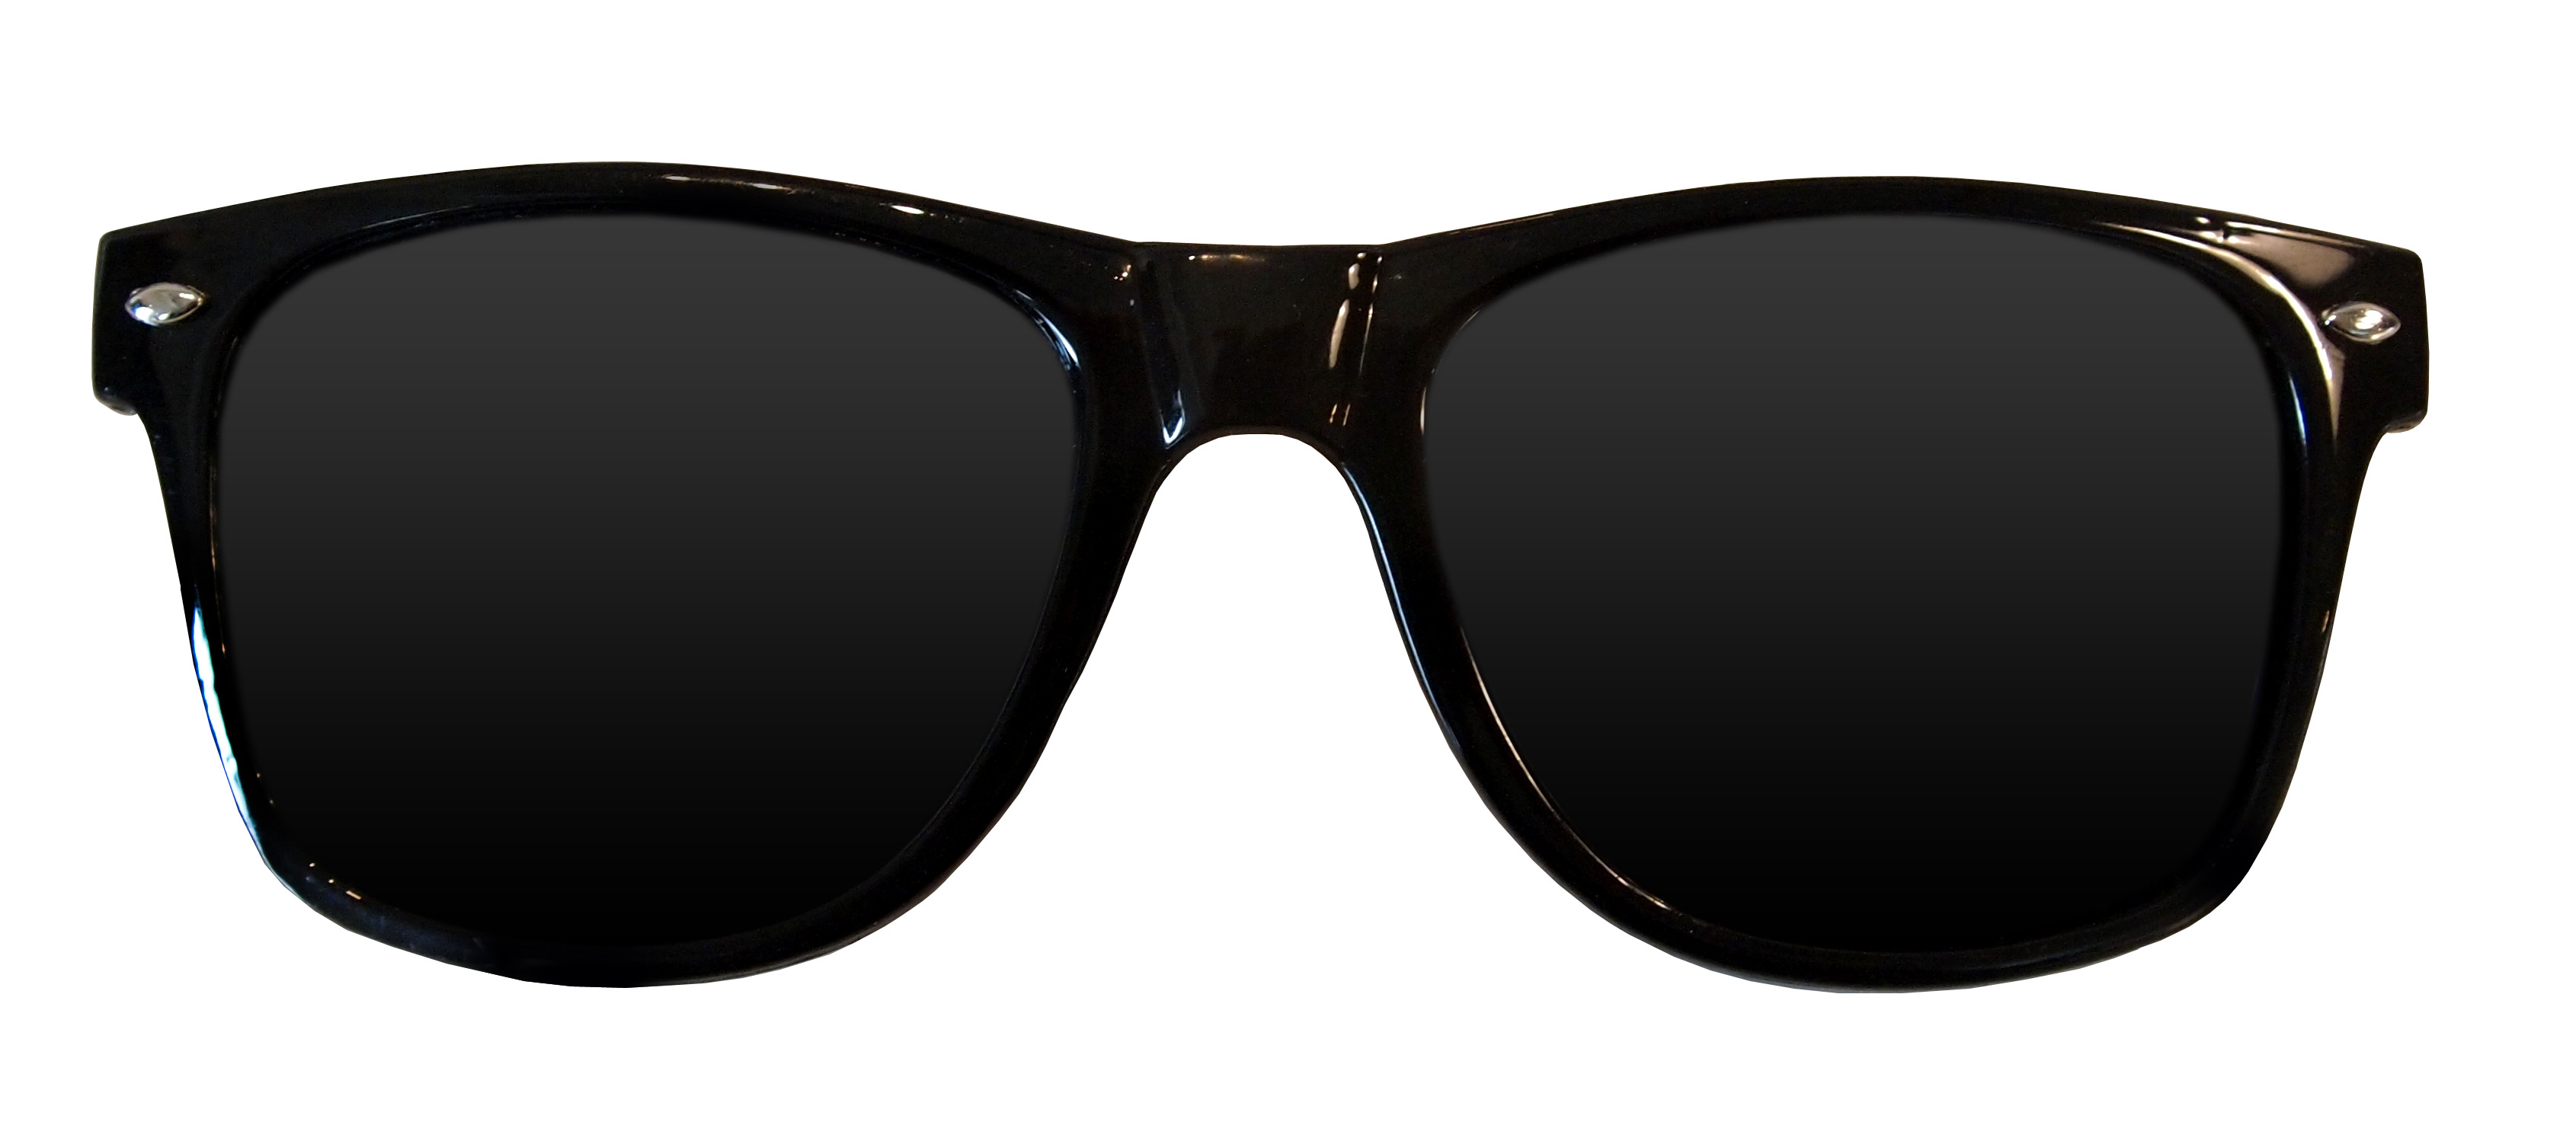 Review & Keep a Pair of Free Ray-Ban Sunglasses Worth $ Register your details with Product Testing USA for a chance to be selected.